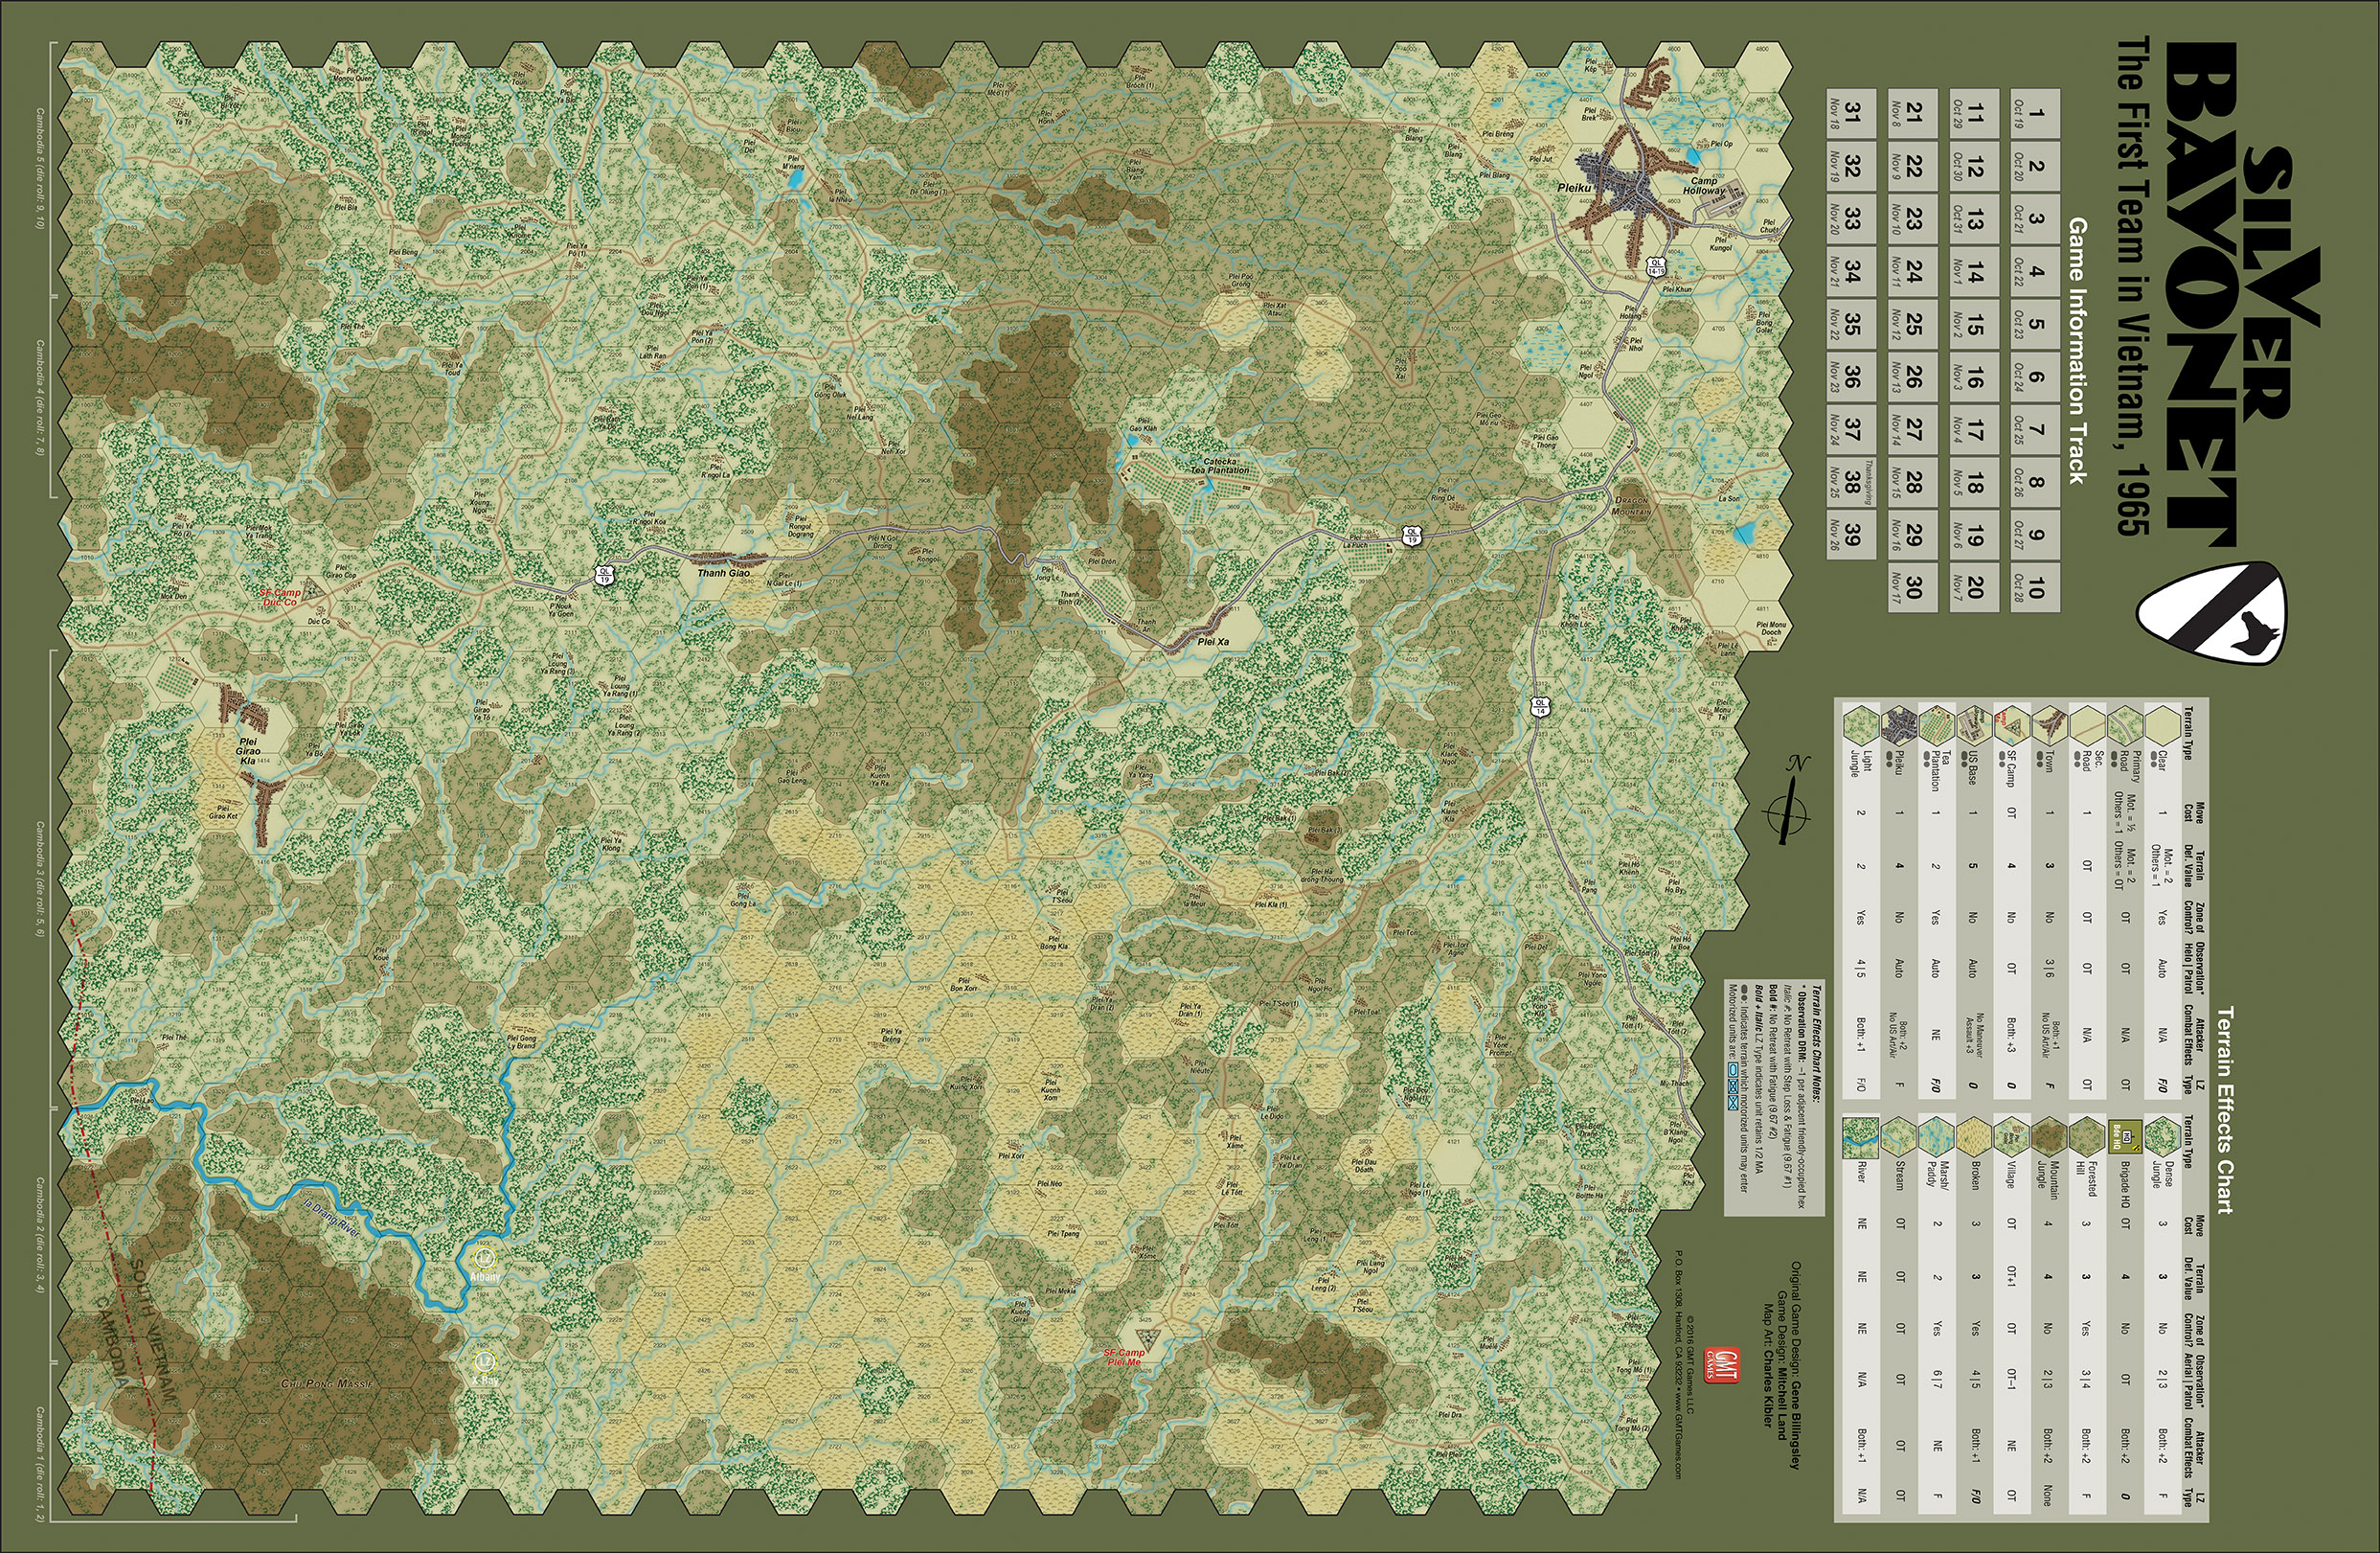 Gmt games silver bayonet 25th anniversary edition game map gumiabroncs Images